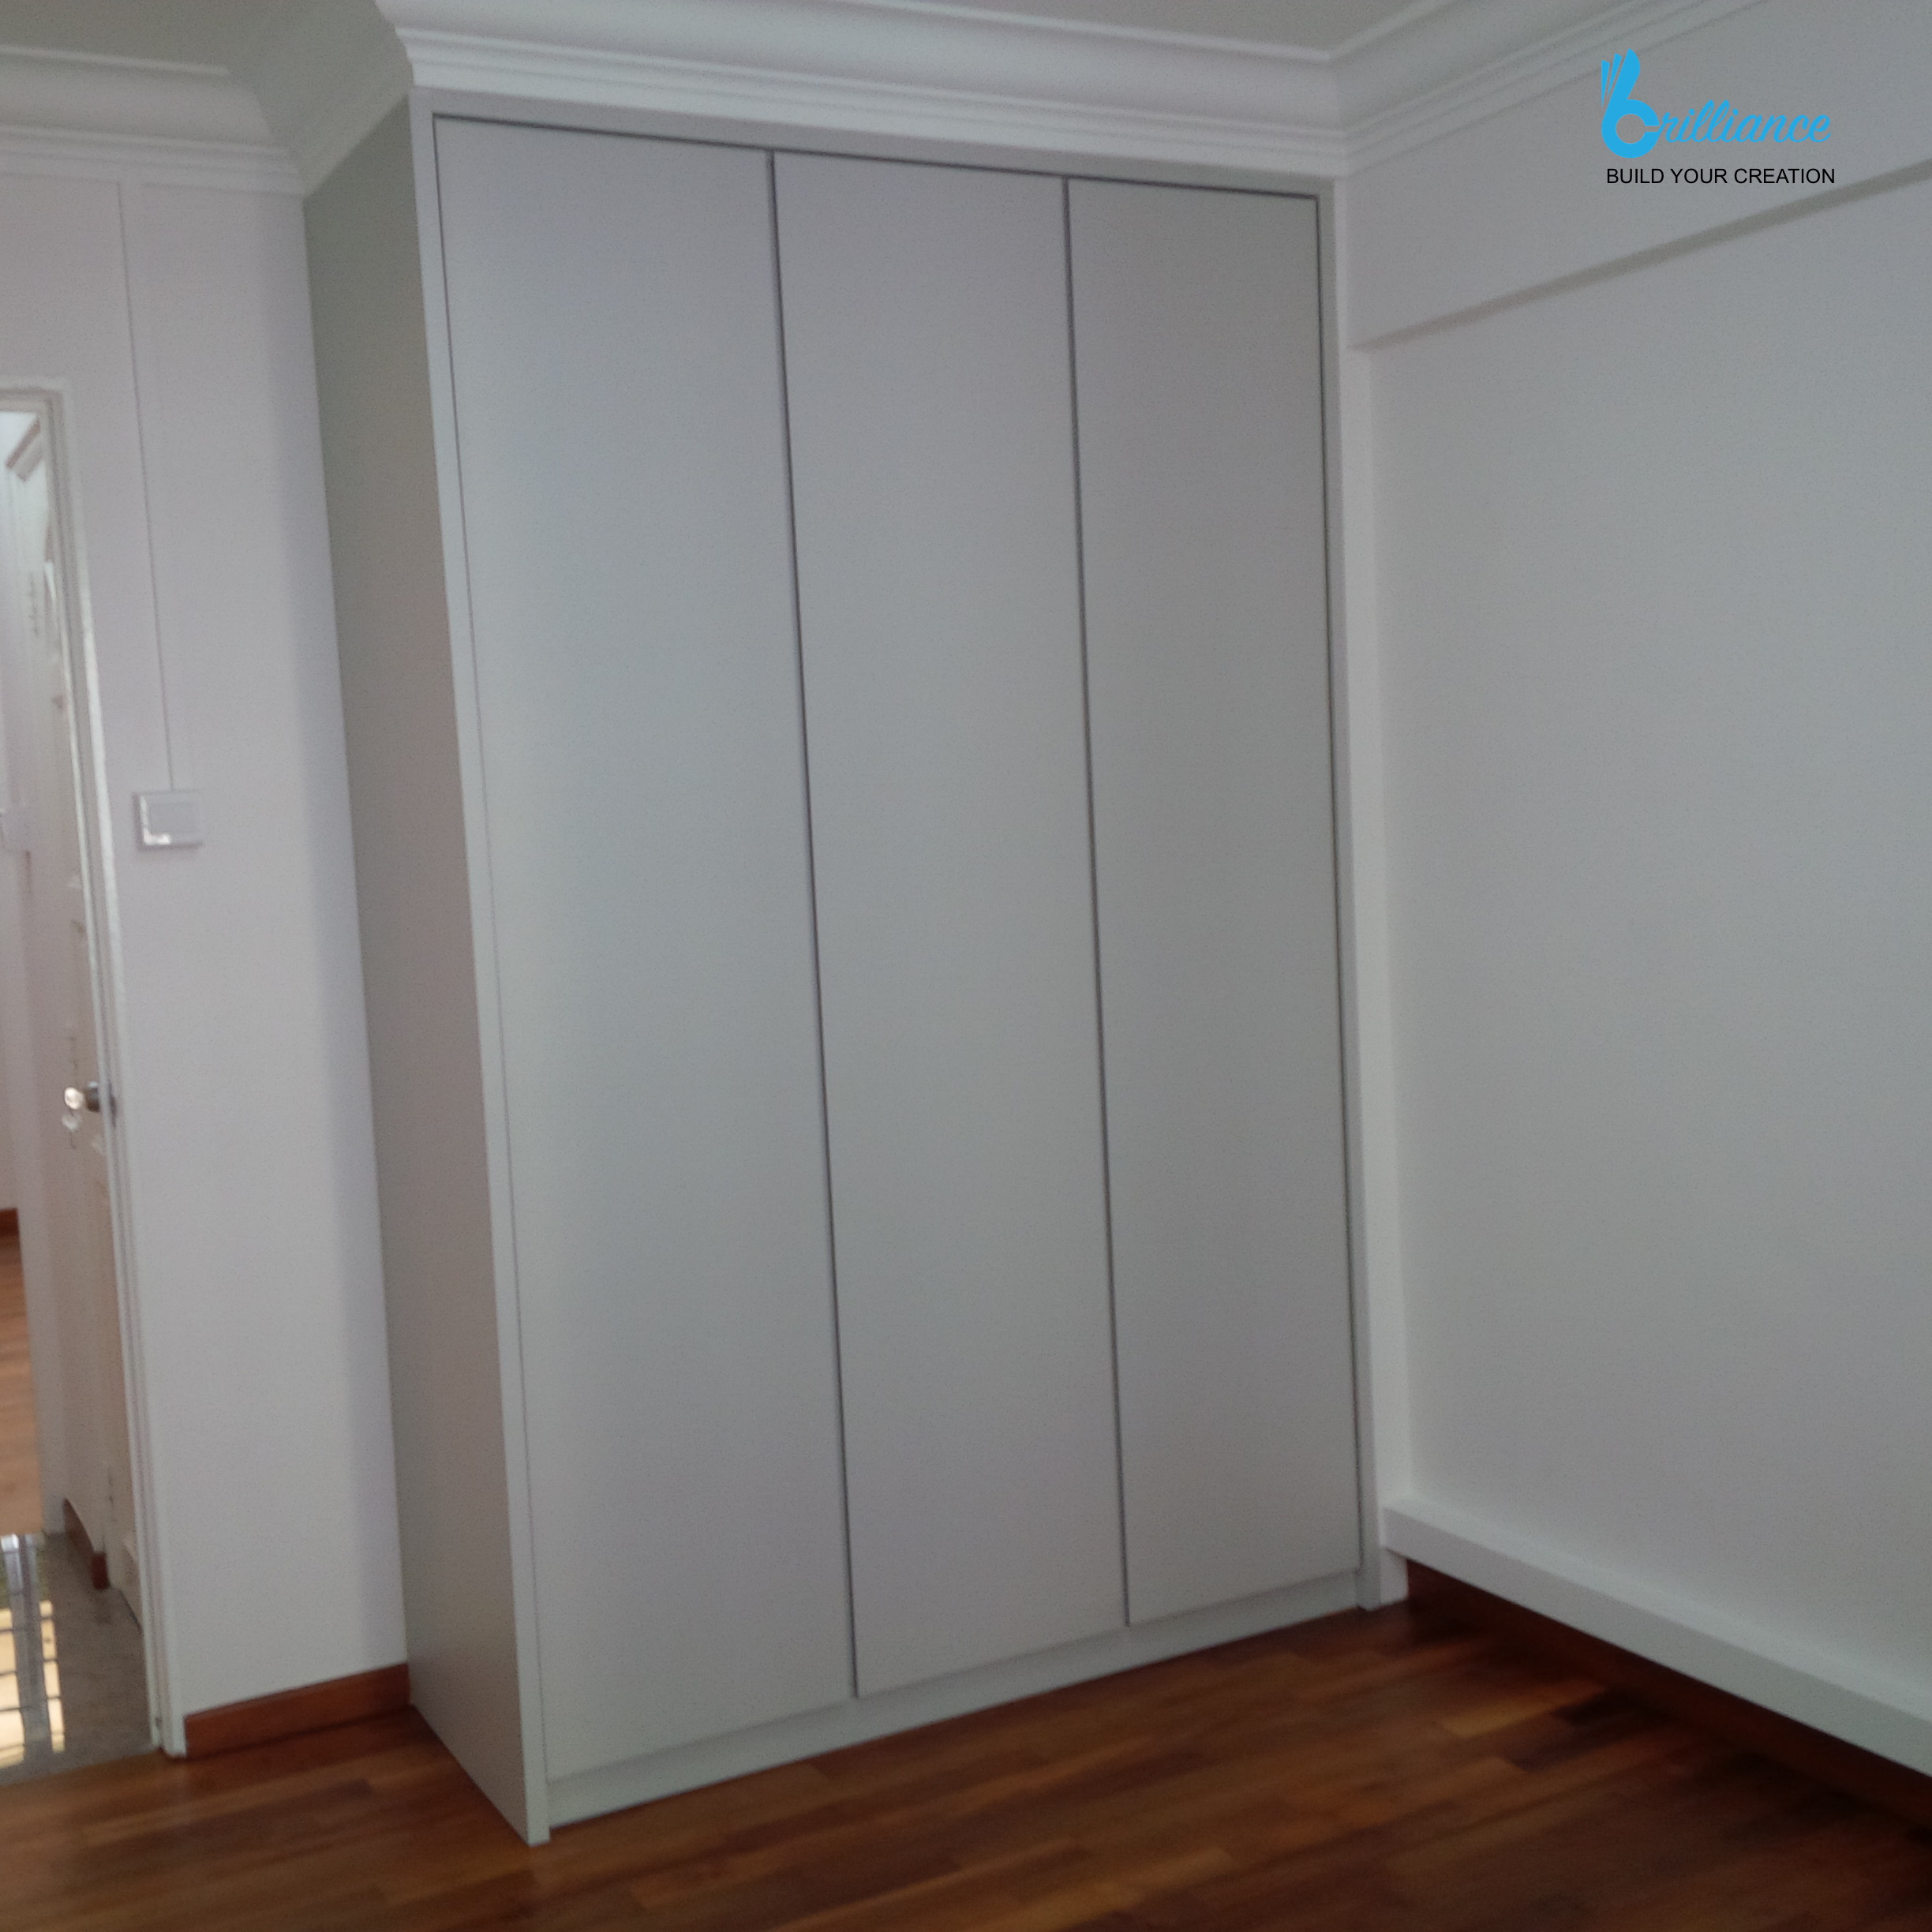 HDB renovation at Hougang ave 10 - wardrobe